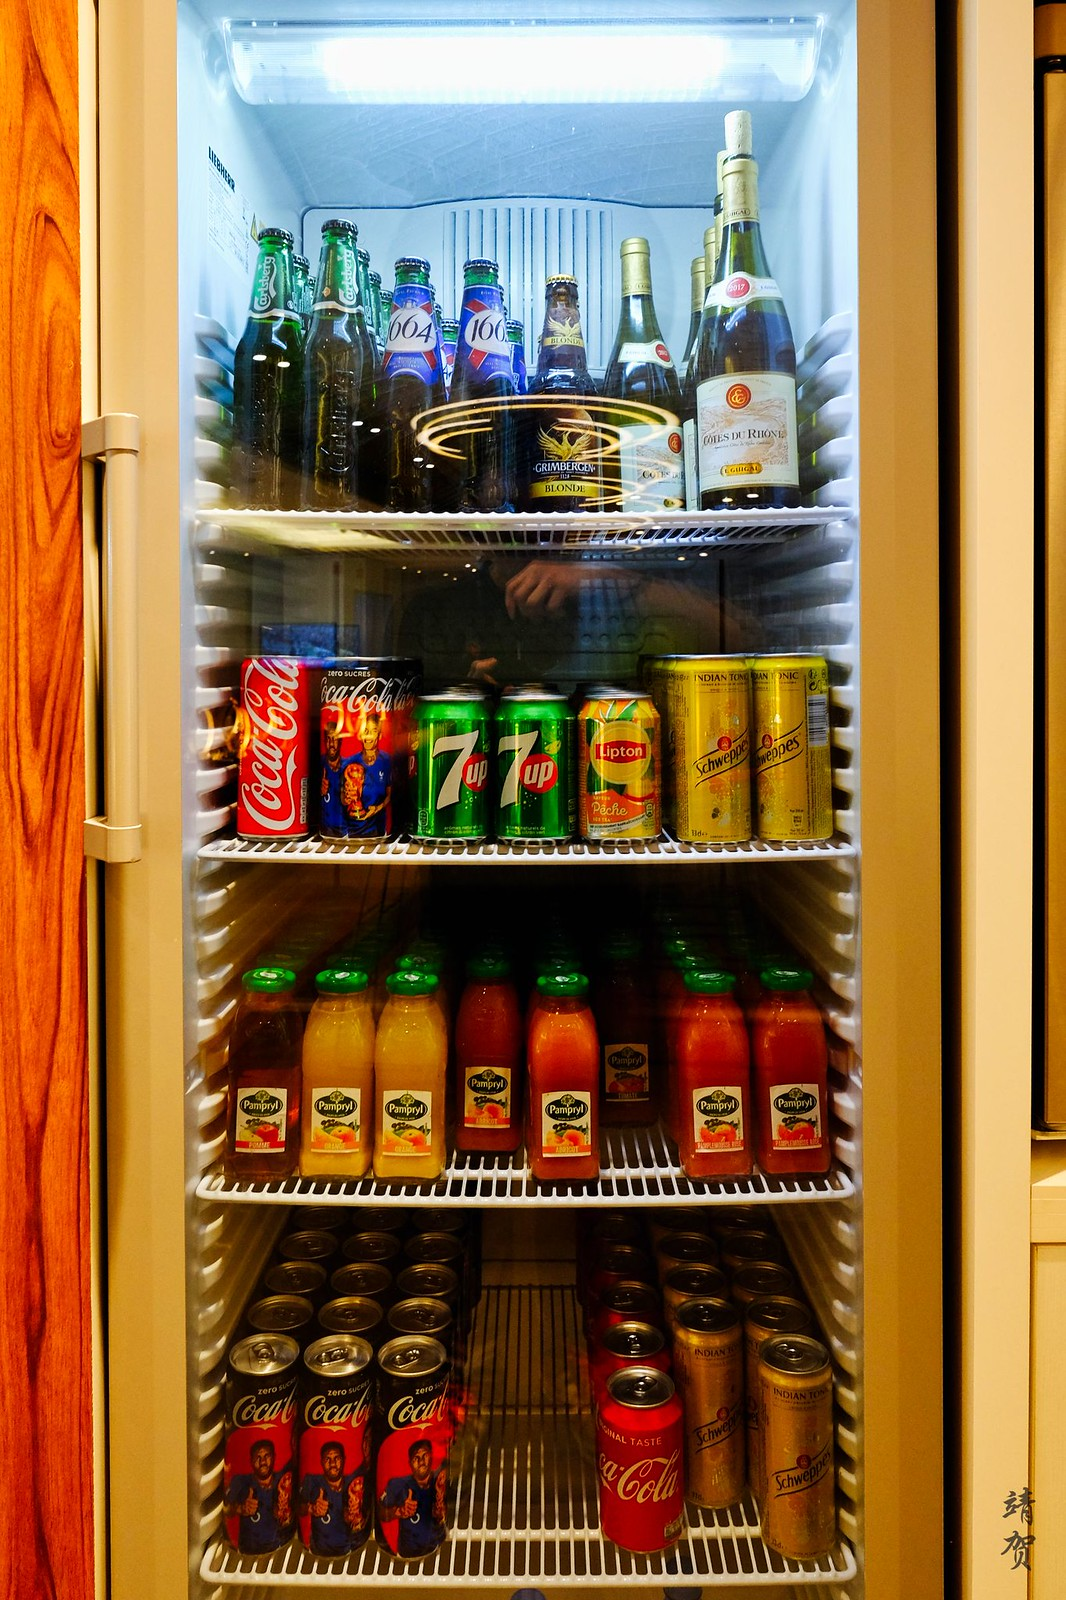 Juices and beer fridge